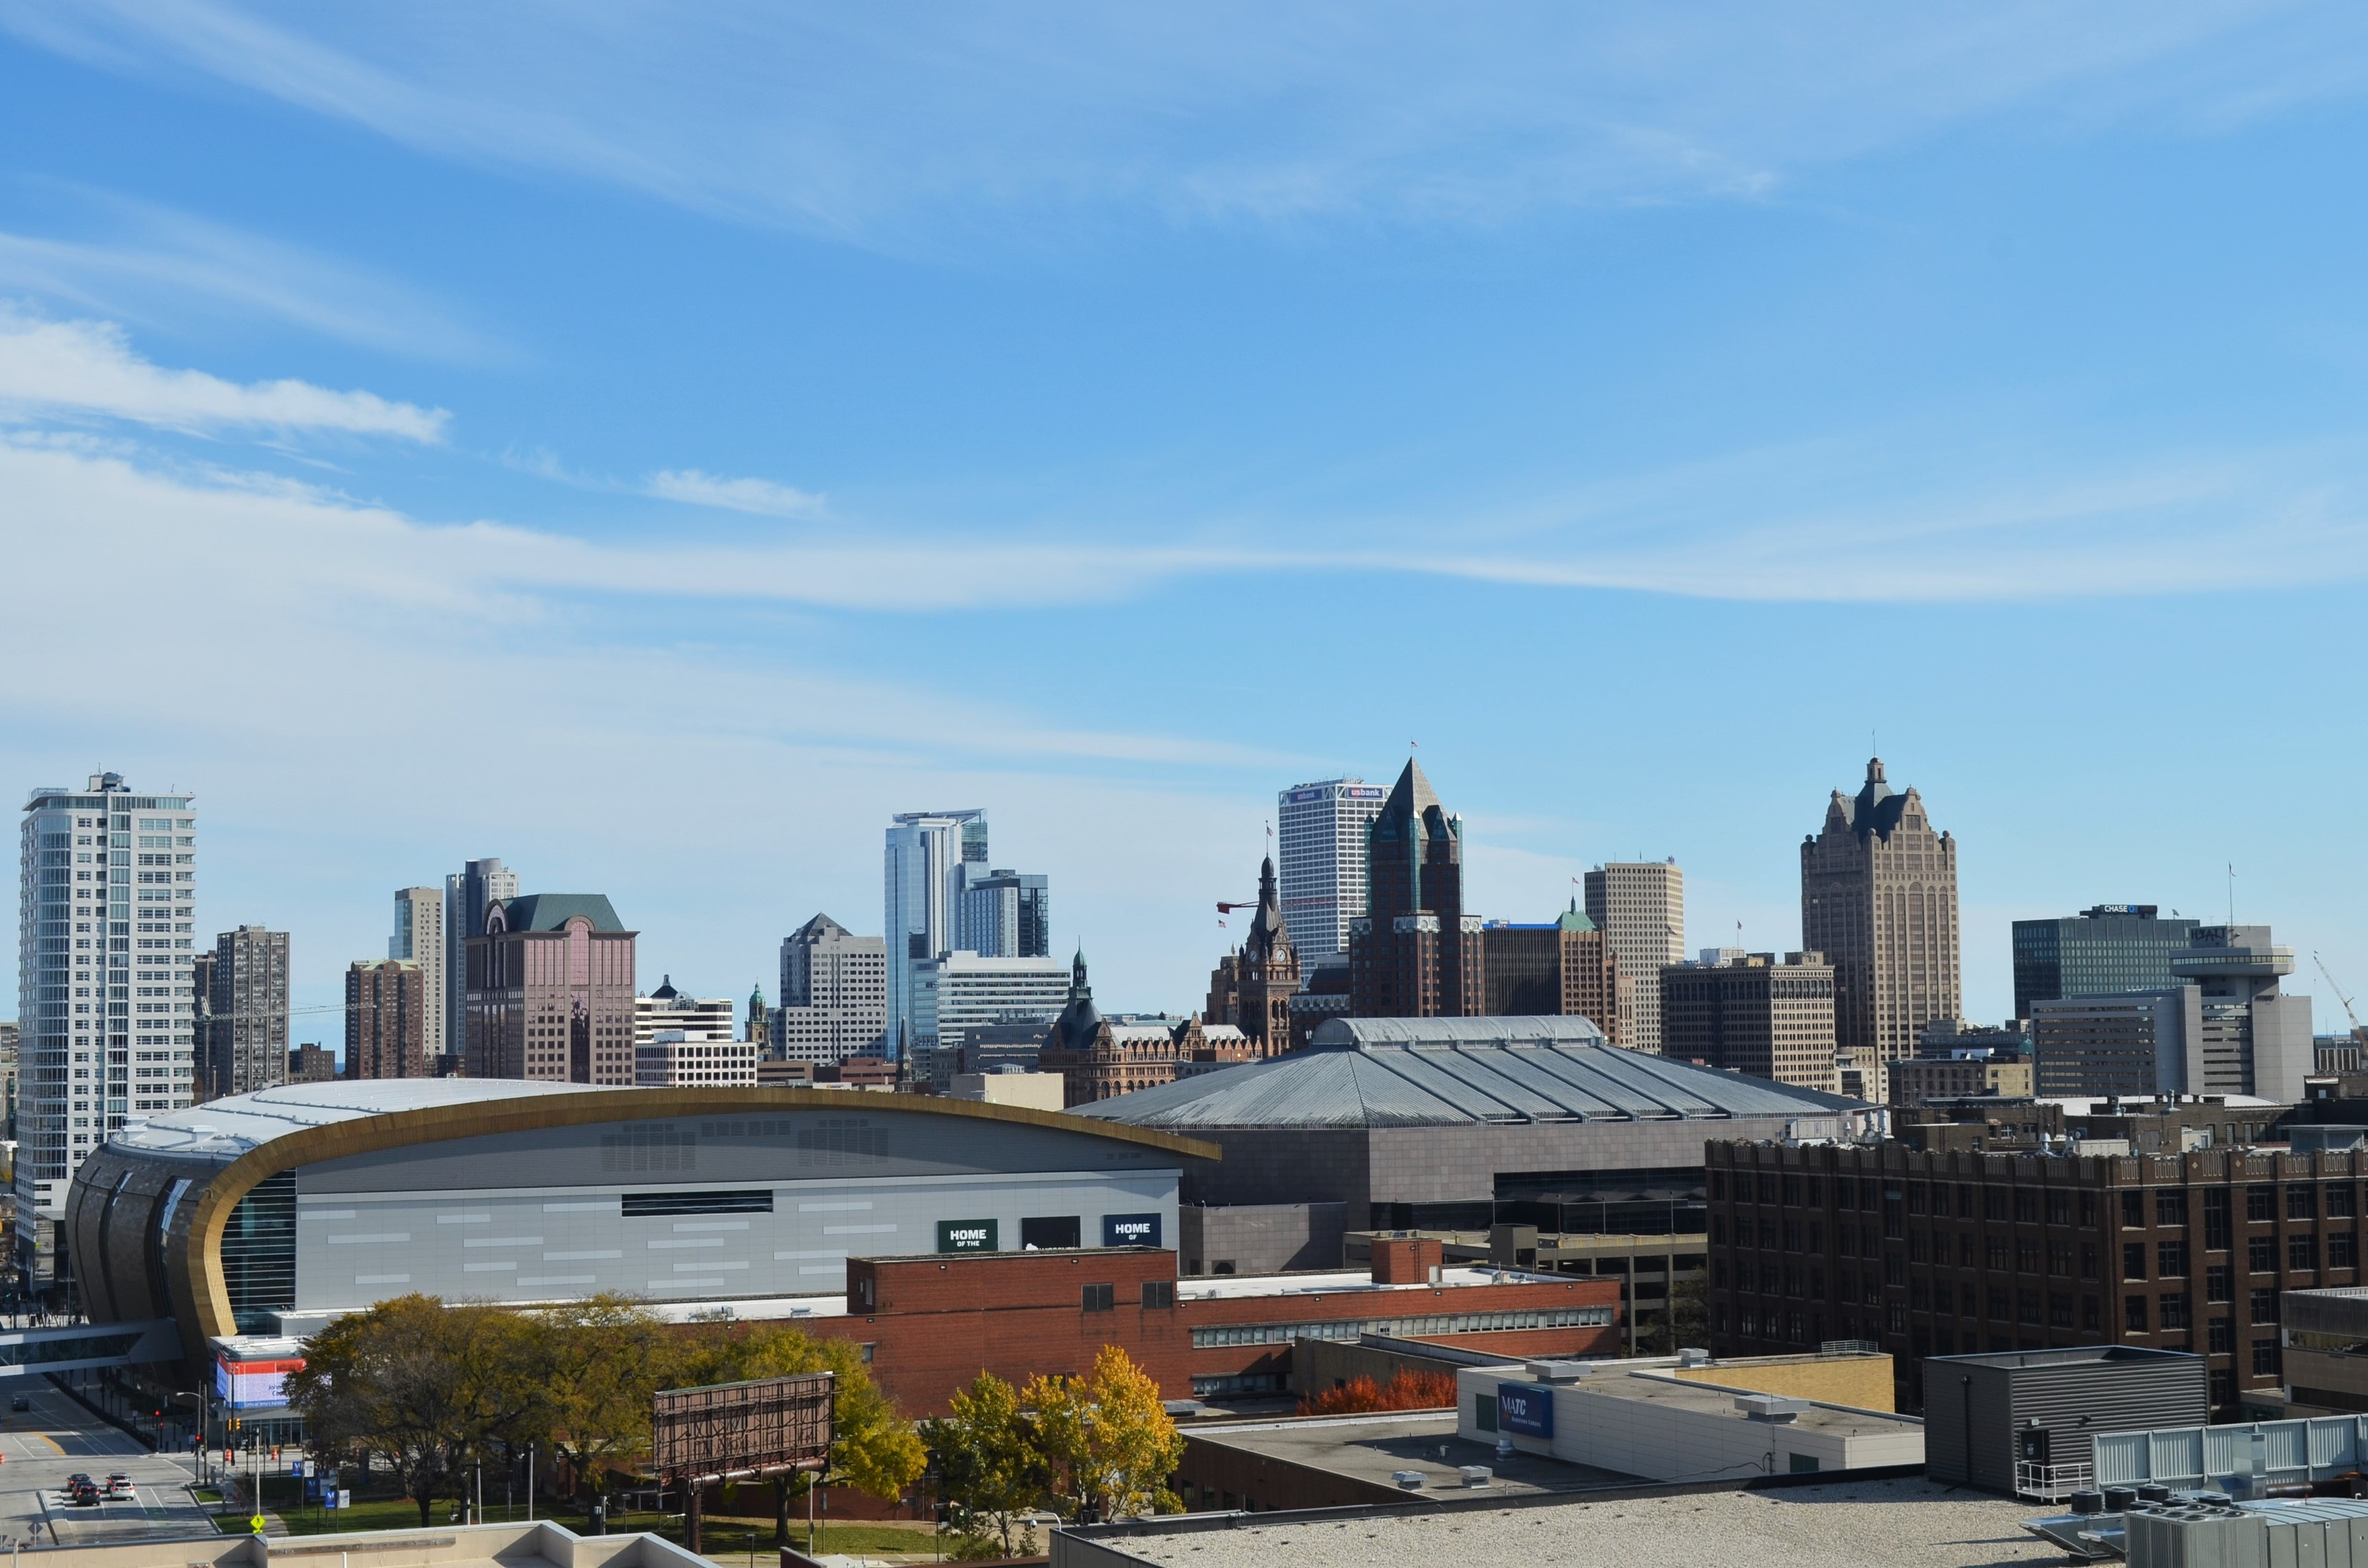 View of Downtown Milwaukee from parking structure near Pabst Milwaukee Brewery & Taproom. Photo by Jack Fennimore.